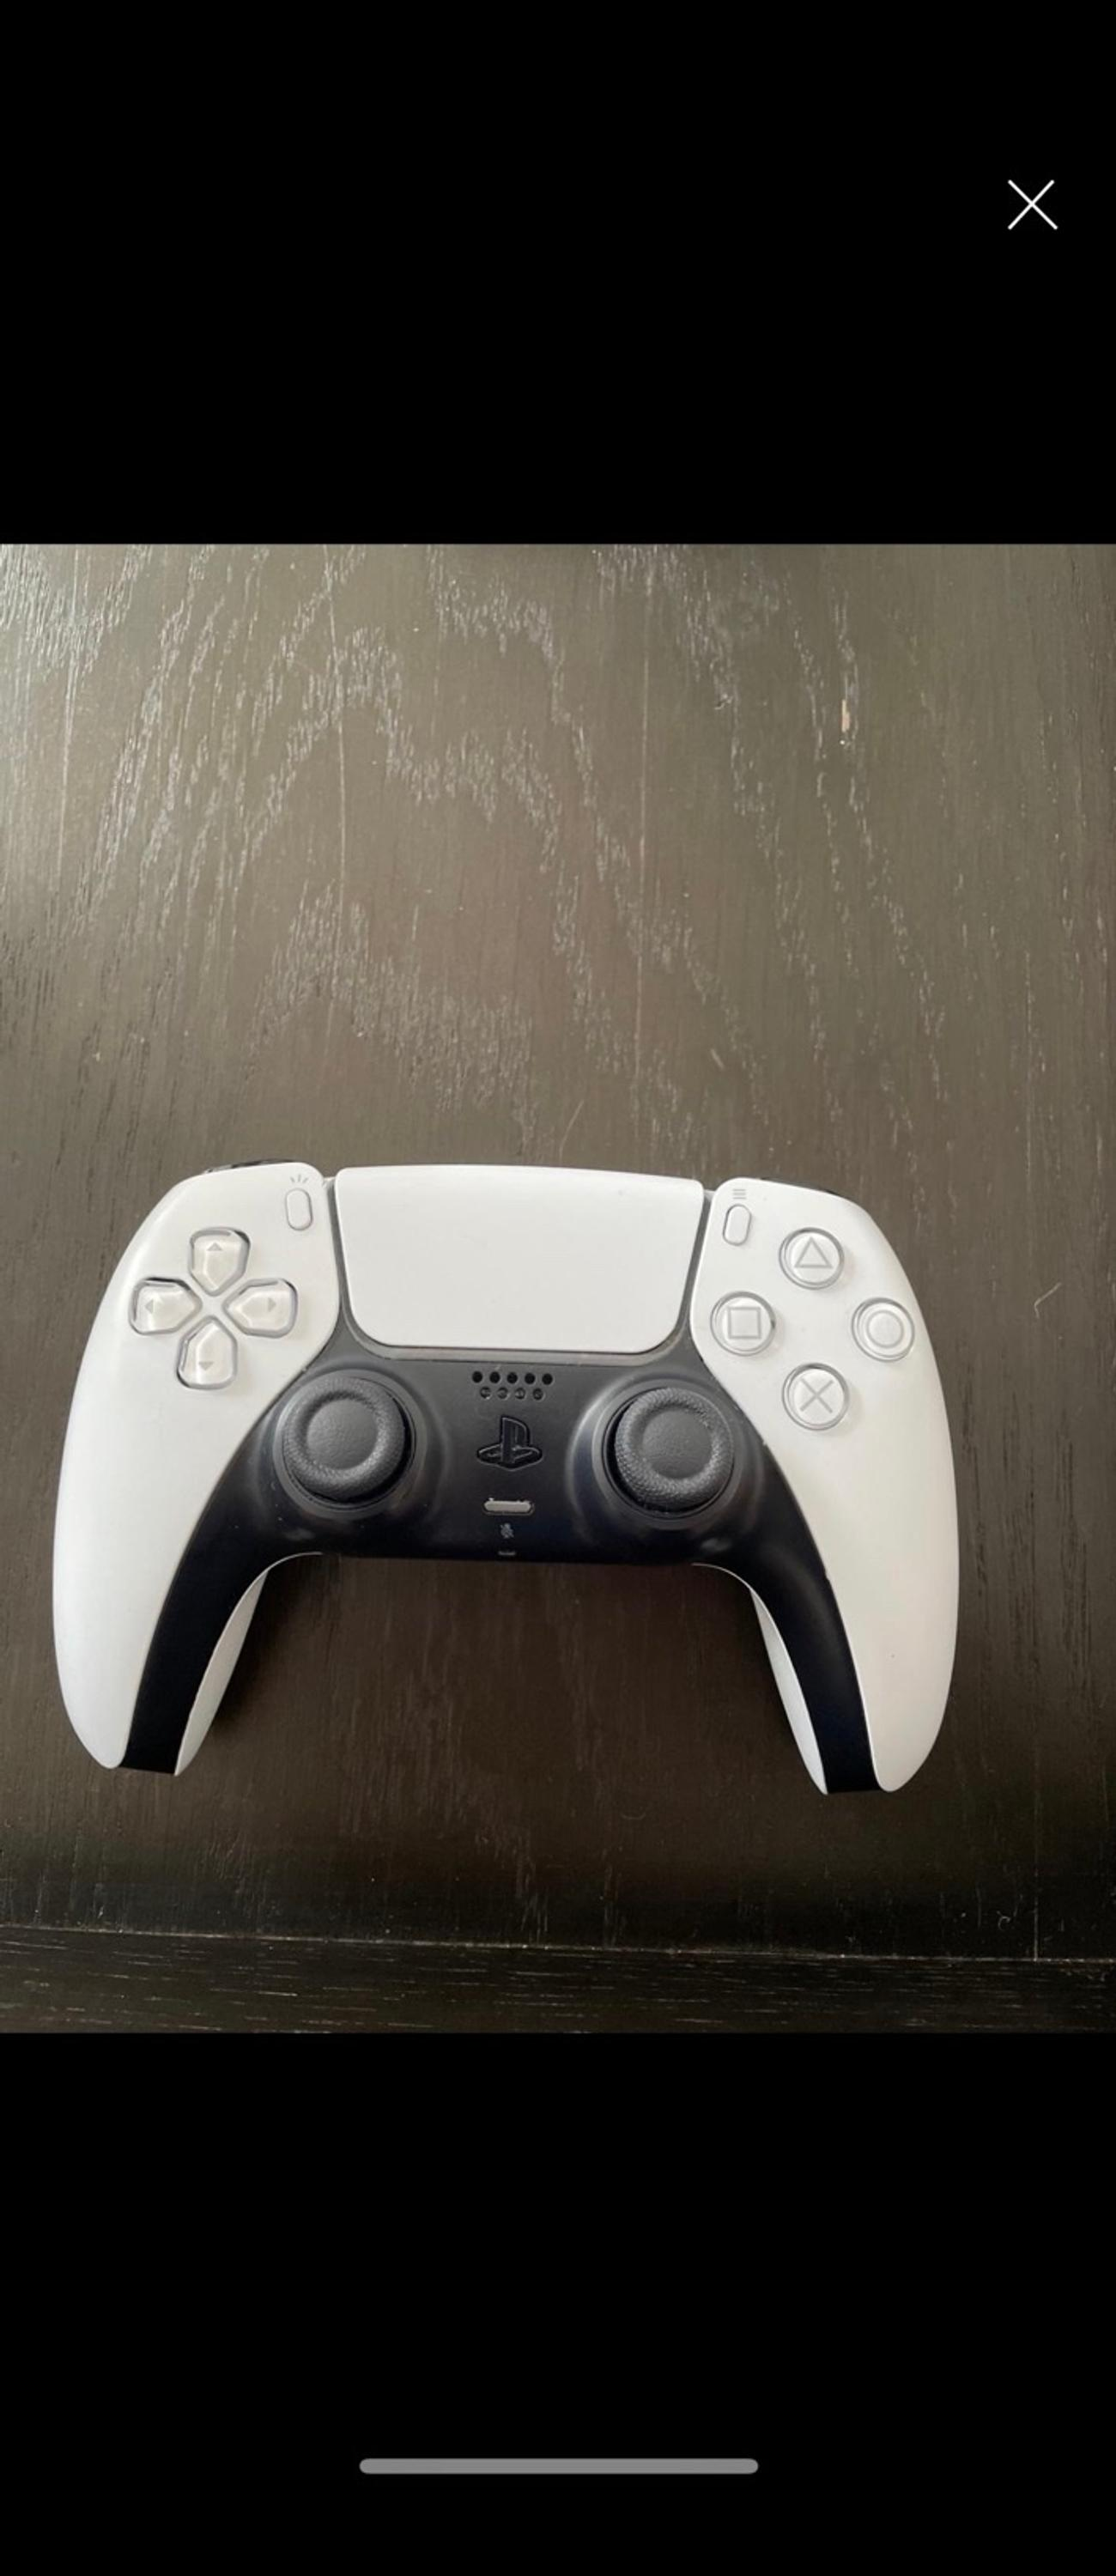 Selling a PS5 controller. Only problem with it is the headphone jack doesn't pick up headset microphones but the controller works fine. I have bought another one since. Would be perfect as a spare if you don't need a mic.